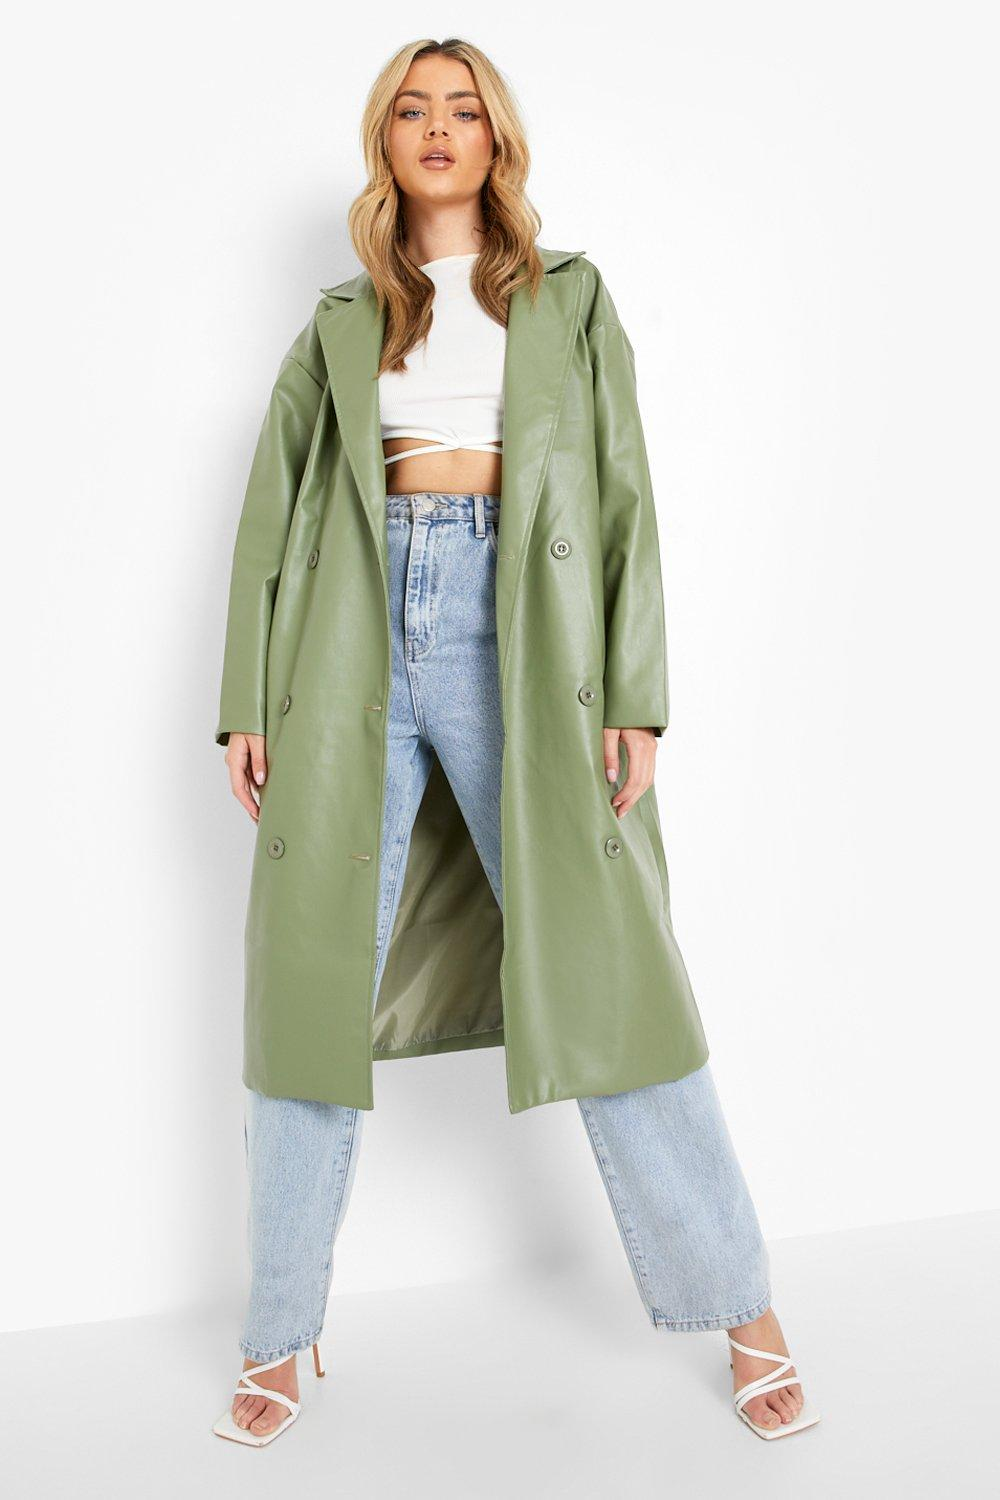 70s Jackets, Furs, Vests, Ponchos Womens Faux Leather Trench Coat - Green - 12 $100.00 AT vintagedancer.com